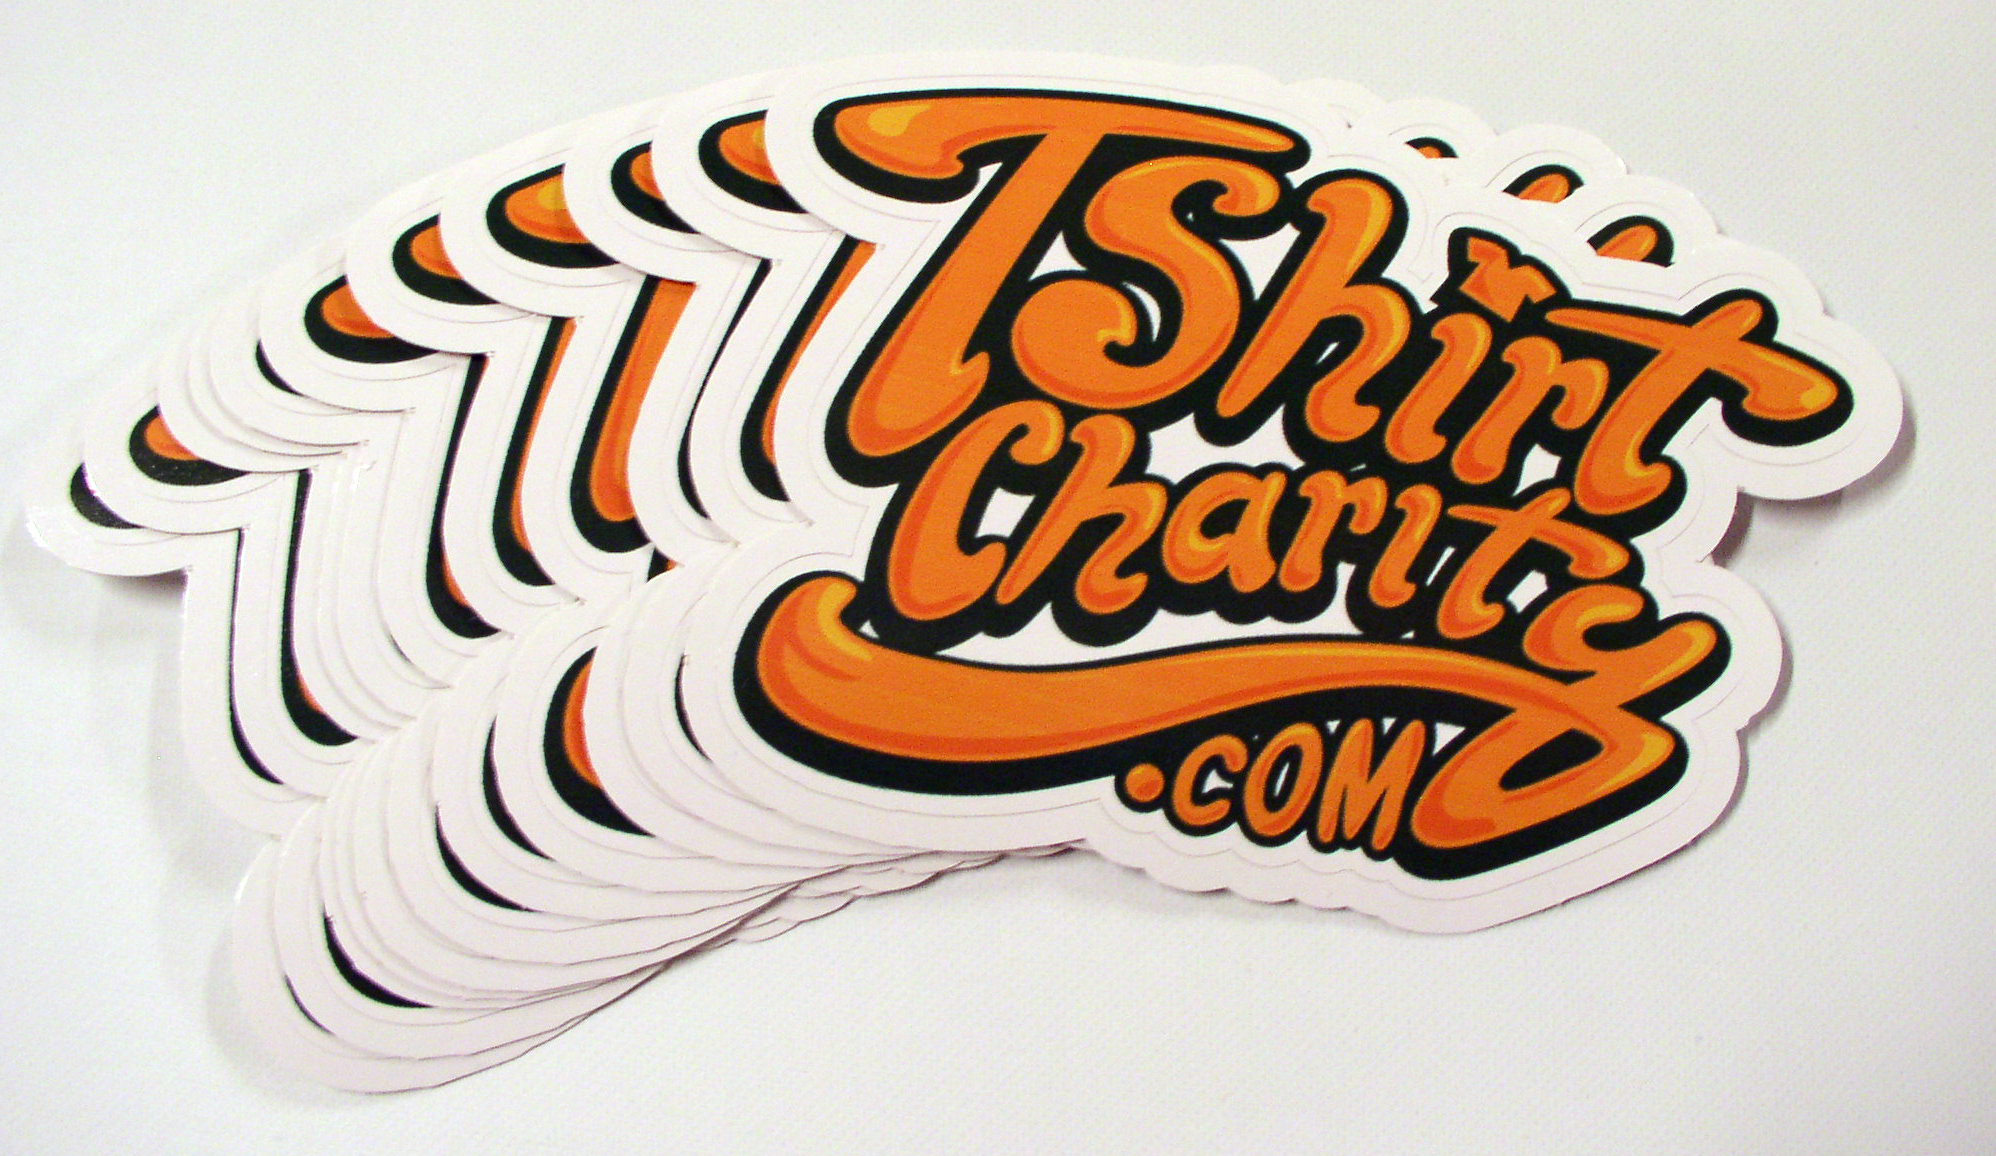 Die Cut Stickers Custom Vinyl Decals - What are custom die cut stickers